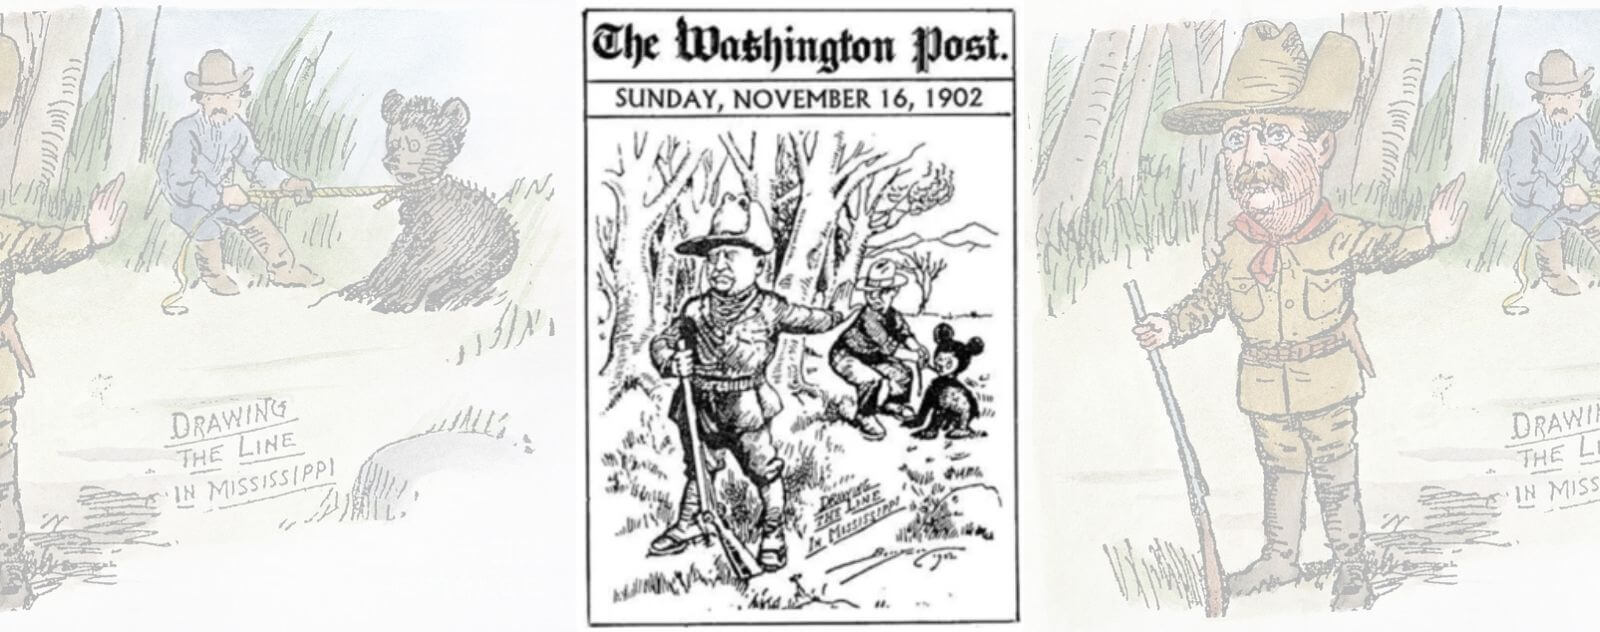 Theodore Roosevelt et le Premier Ours en Peluche (Caricature Drawing The Line in Mississippi)